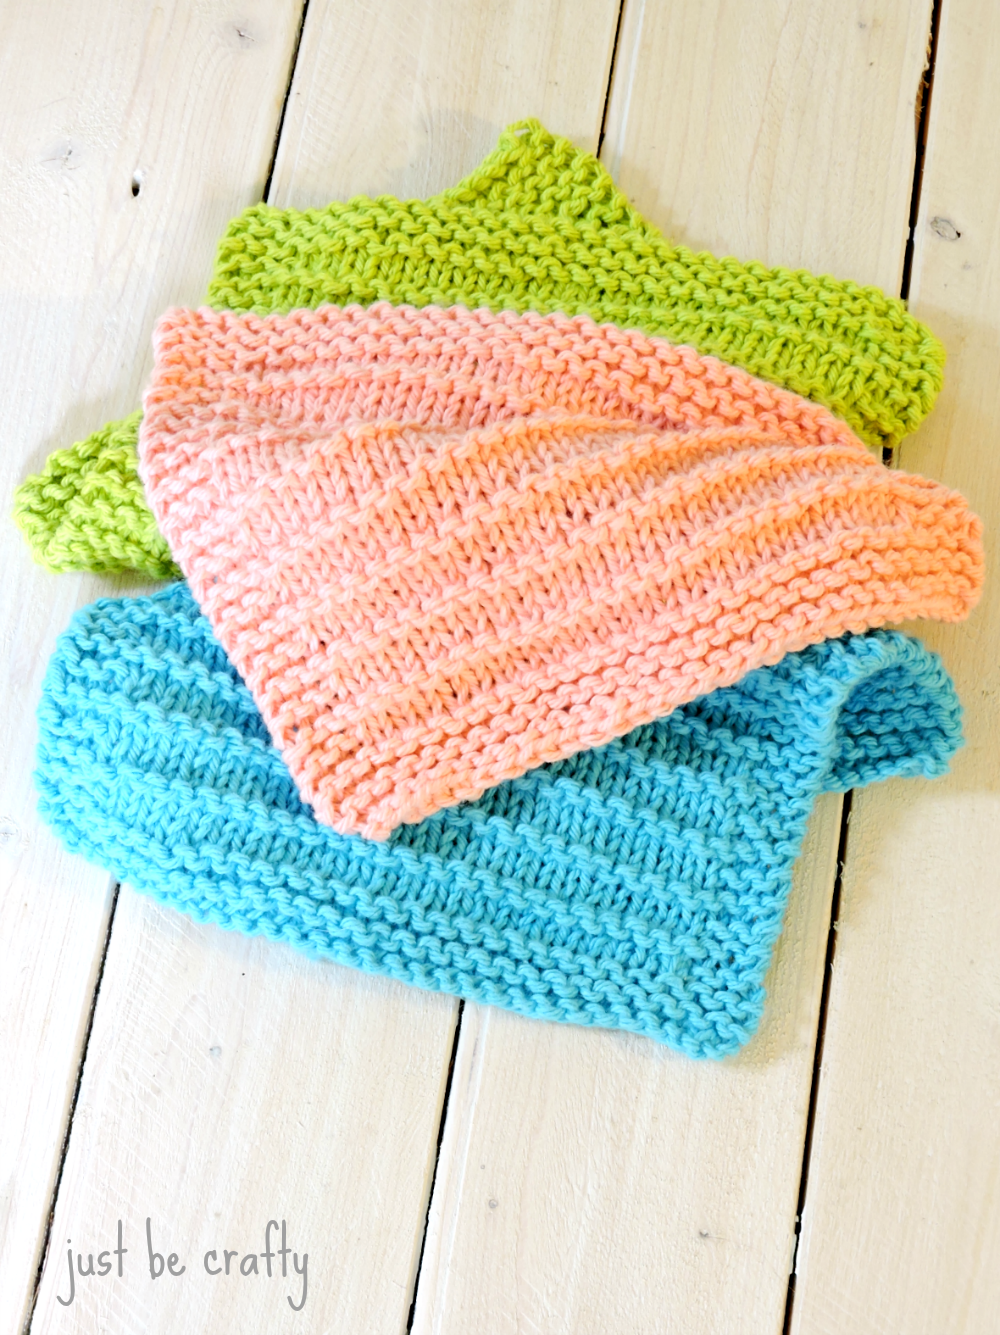 Crafty Knitting Patterns : Farmhouse Kitchen Knitted Dishcloths - Just Be Crafty